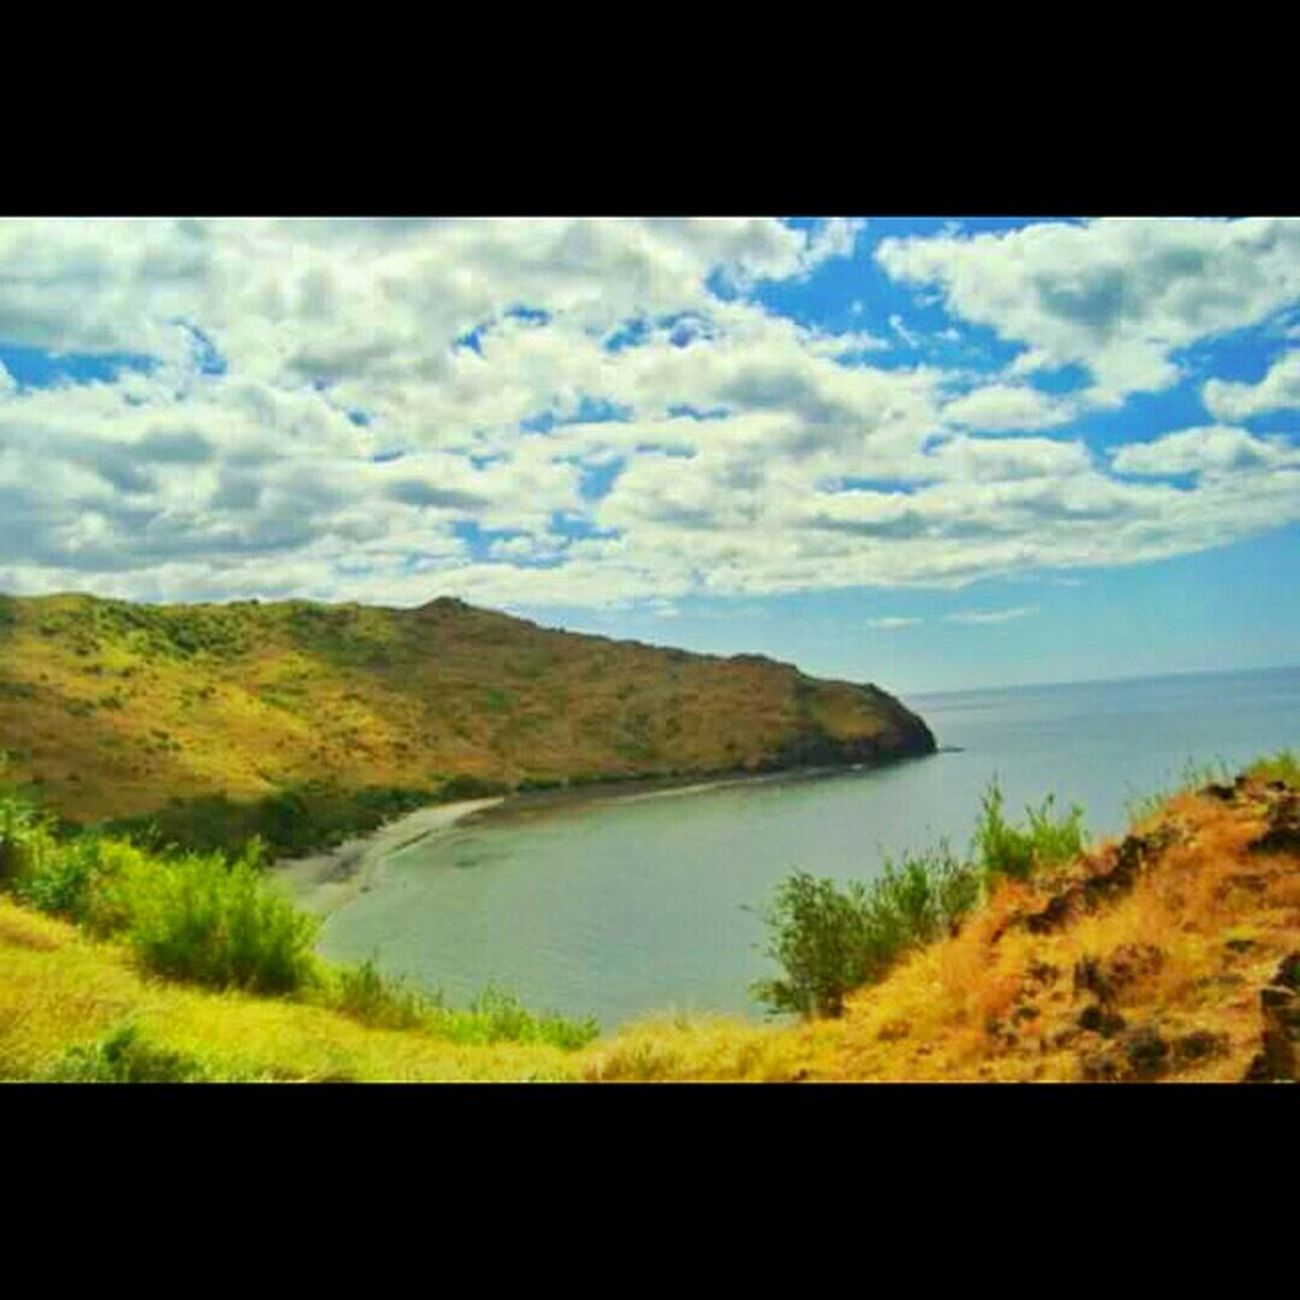 One of the hidden gems of Zambales 'No-trail' hiking could never be this fun. Anawangin Zambales Summer Beach philippines travel itsmorefuninthephilippines camping cove nature southcliff zambalestrip filipino anawangincove naturelovers travelph wanderlust instatravel bestshots_ph goodlife lonelyplanet lovephilippines travelogue12 globejetsetter naturetrip instadaily beachlife iloveph islandhopping wishiwasthere